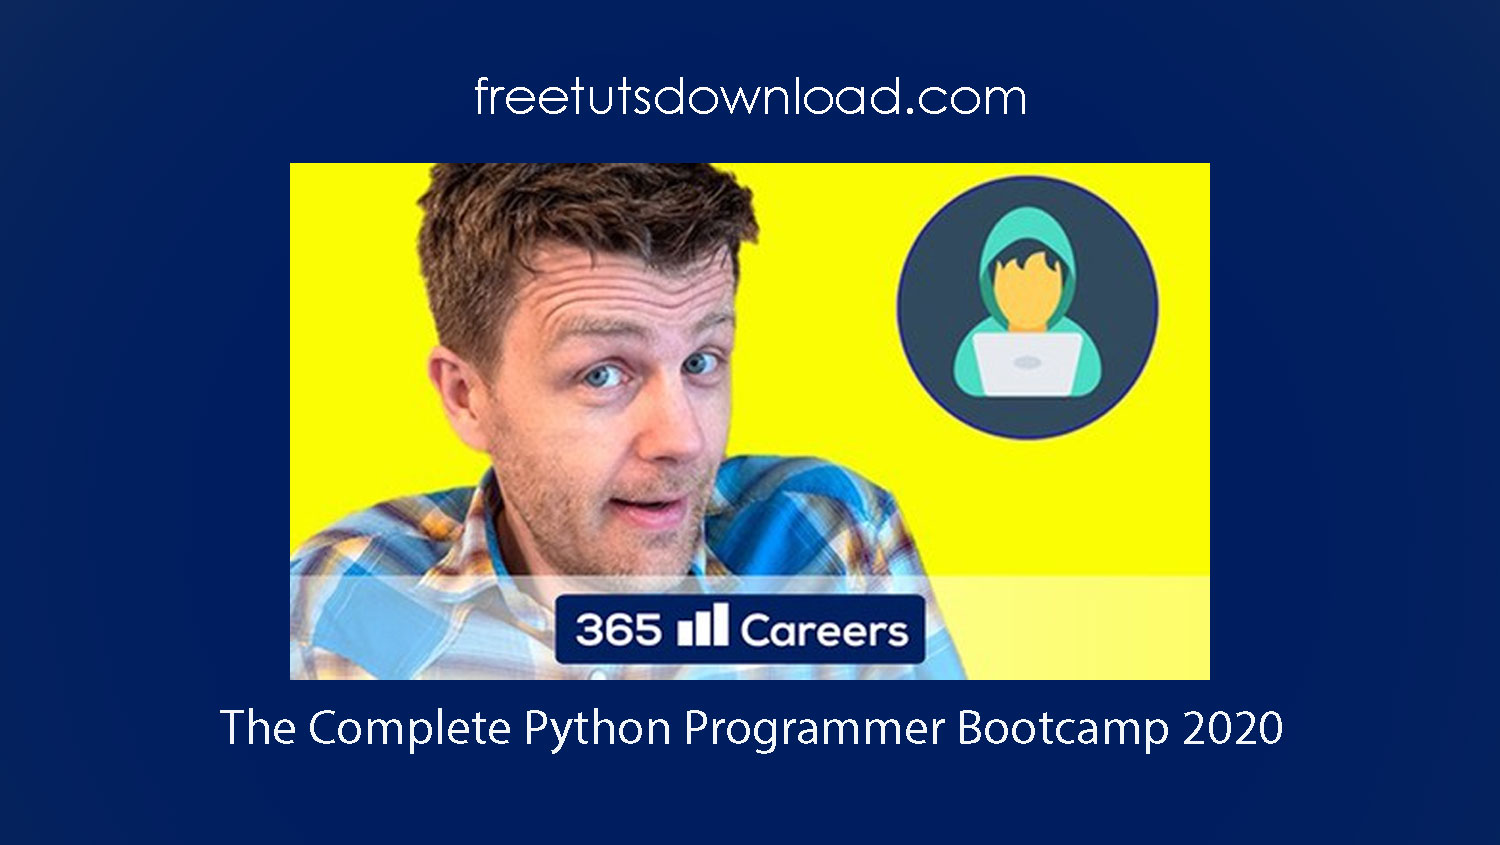 The Complete Python Programmer Bootcamp 2020